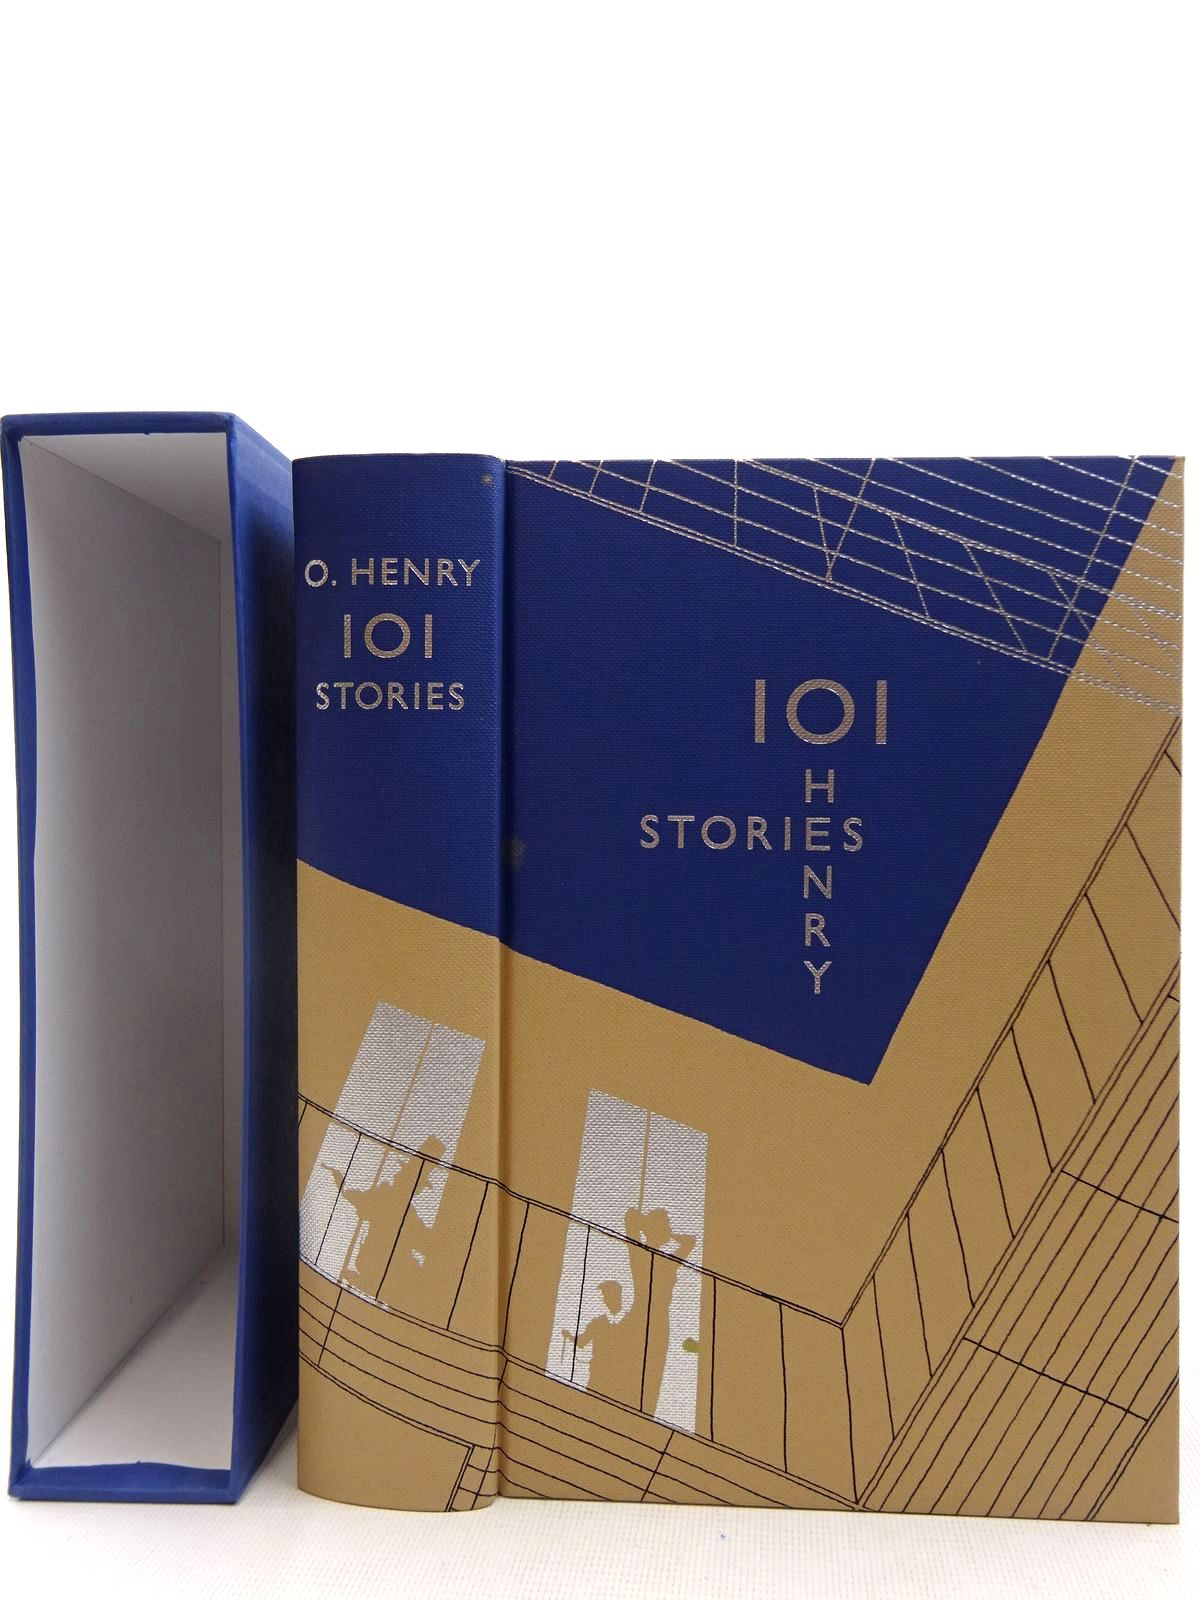 Photo of 101 STORIES written by Henry, O. illustrated by Waters, Rod published by Folio Society (STOCK CODE: 2128293)  for sale by Stella & Rose's Books